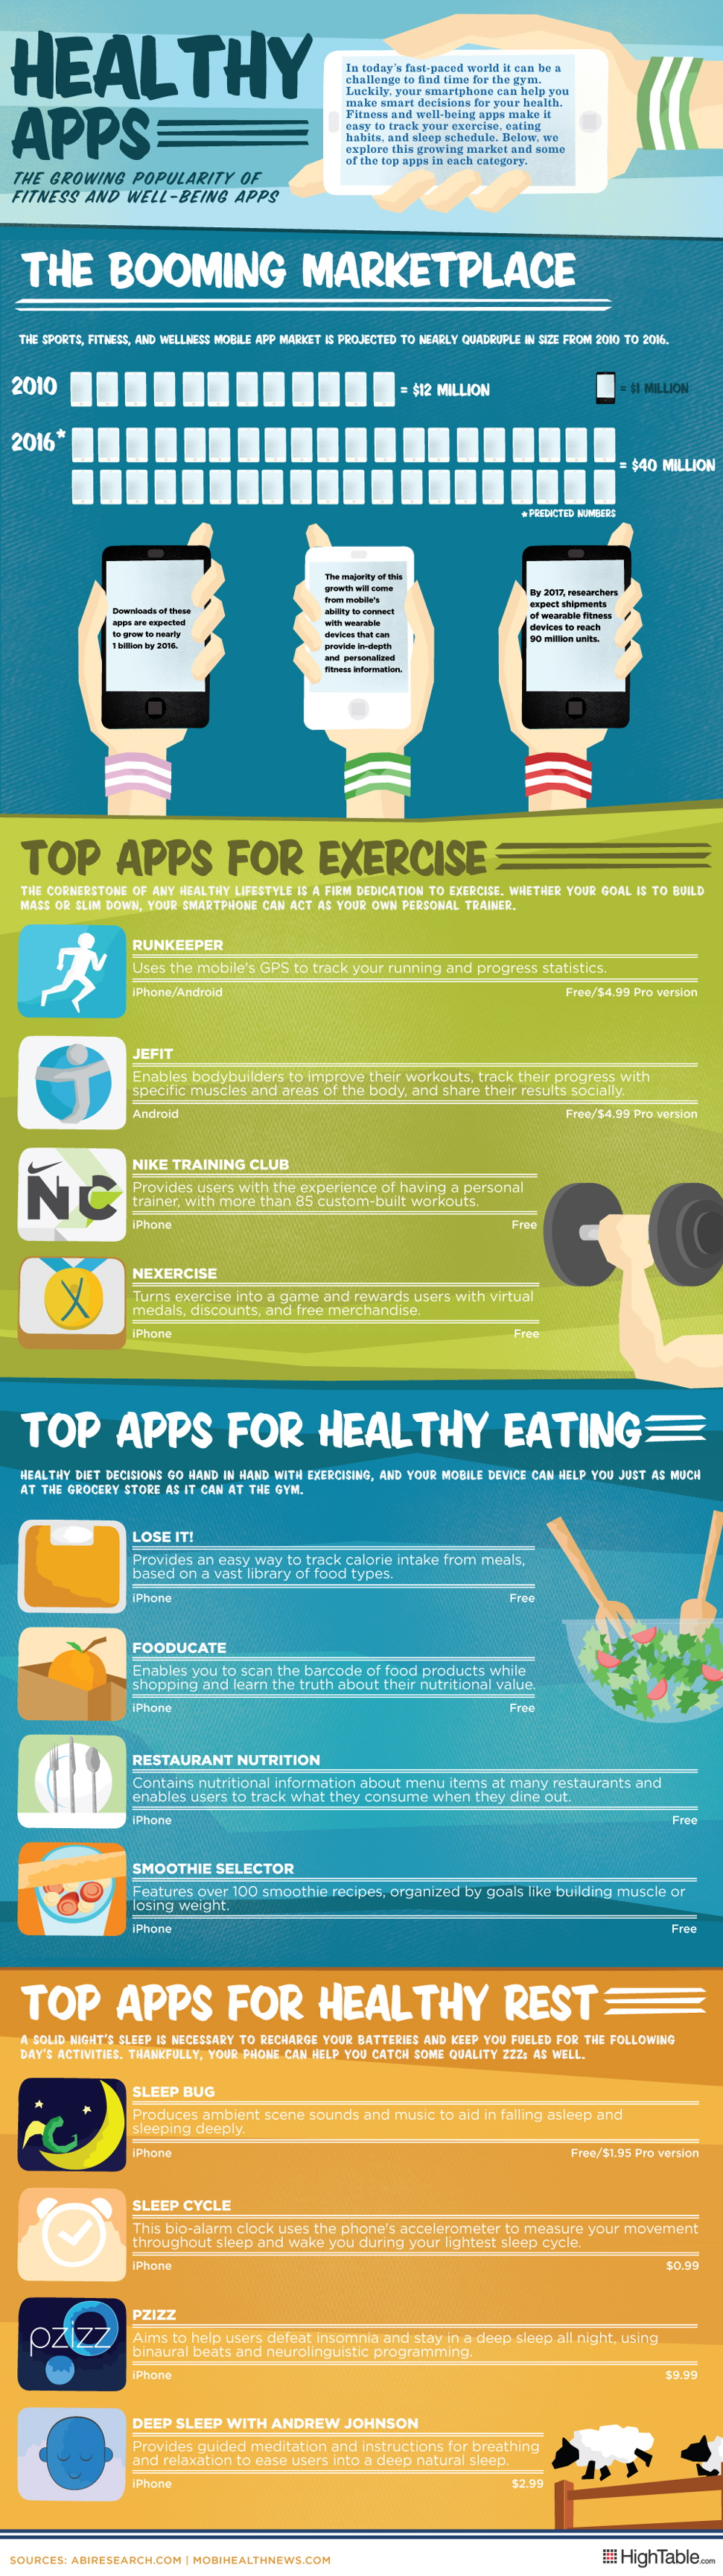 Healthy Apps: The Growing Popularity of Fitness and Well-Being Apps [INFOGRAPHIC]